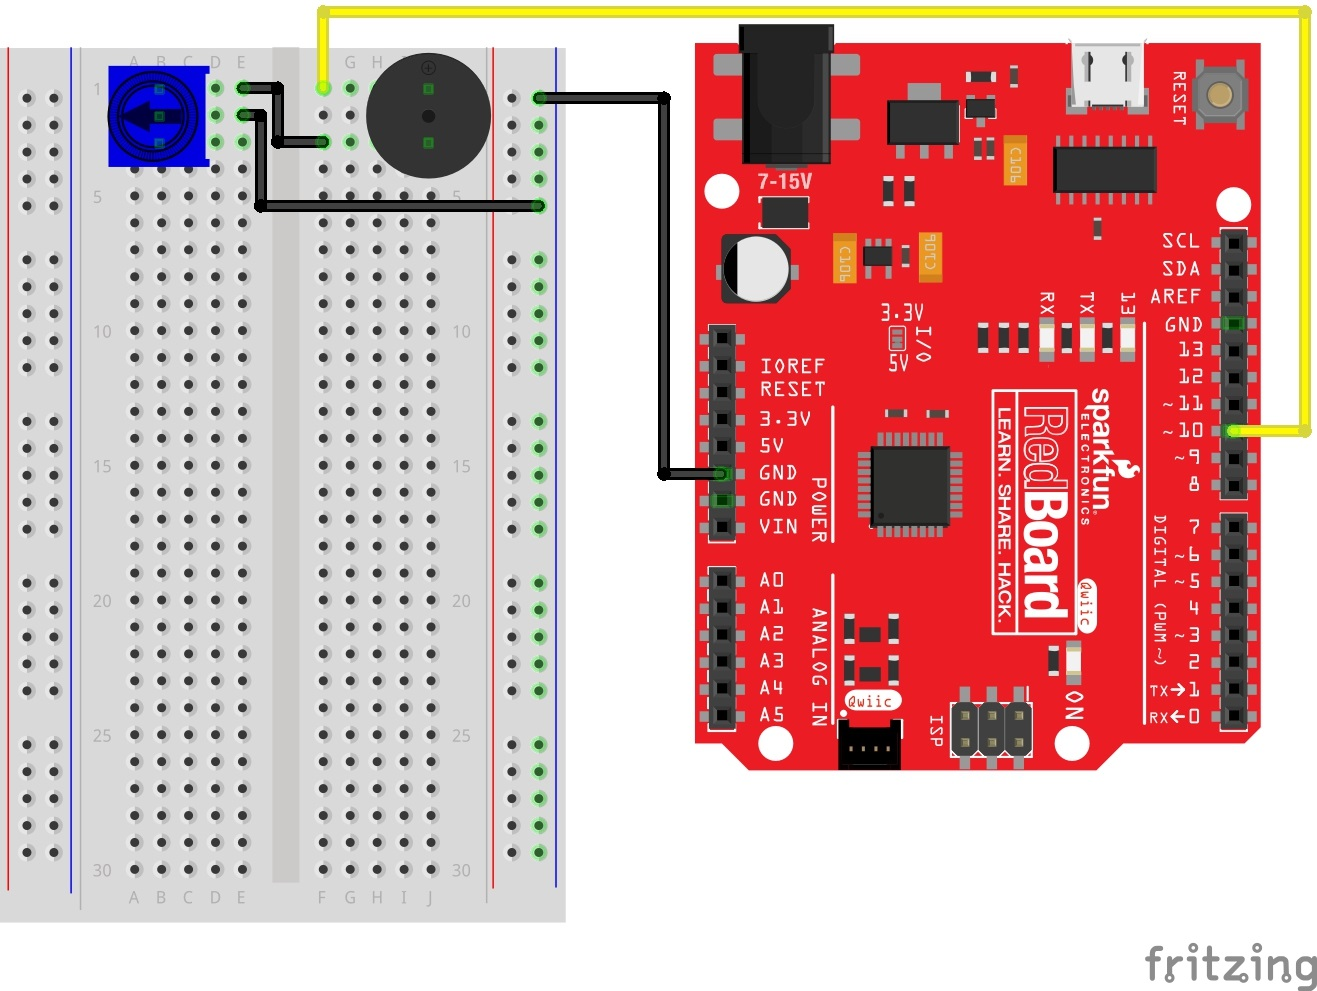 Sparkfun Inventor U0026 39 S Kit Experiment Guide - V4 1